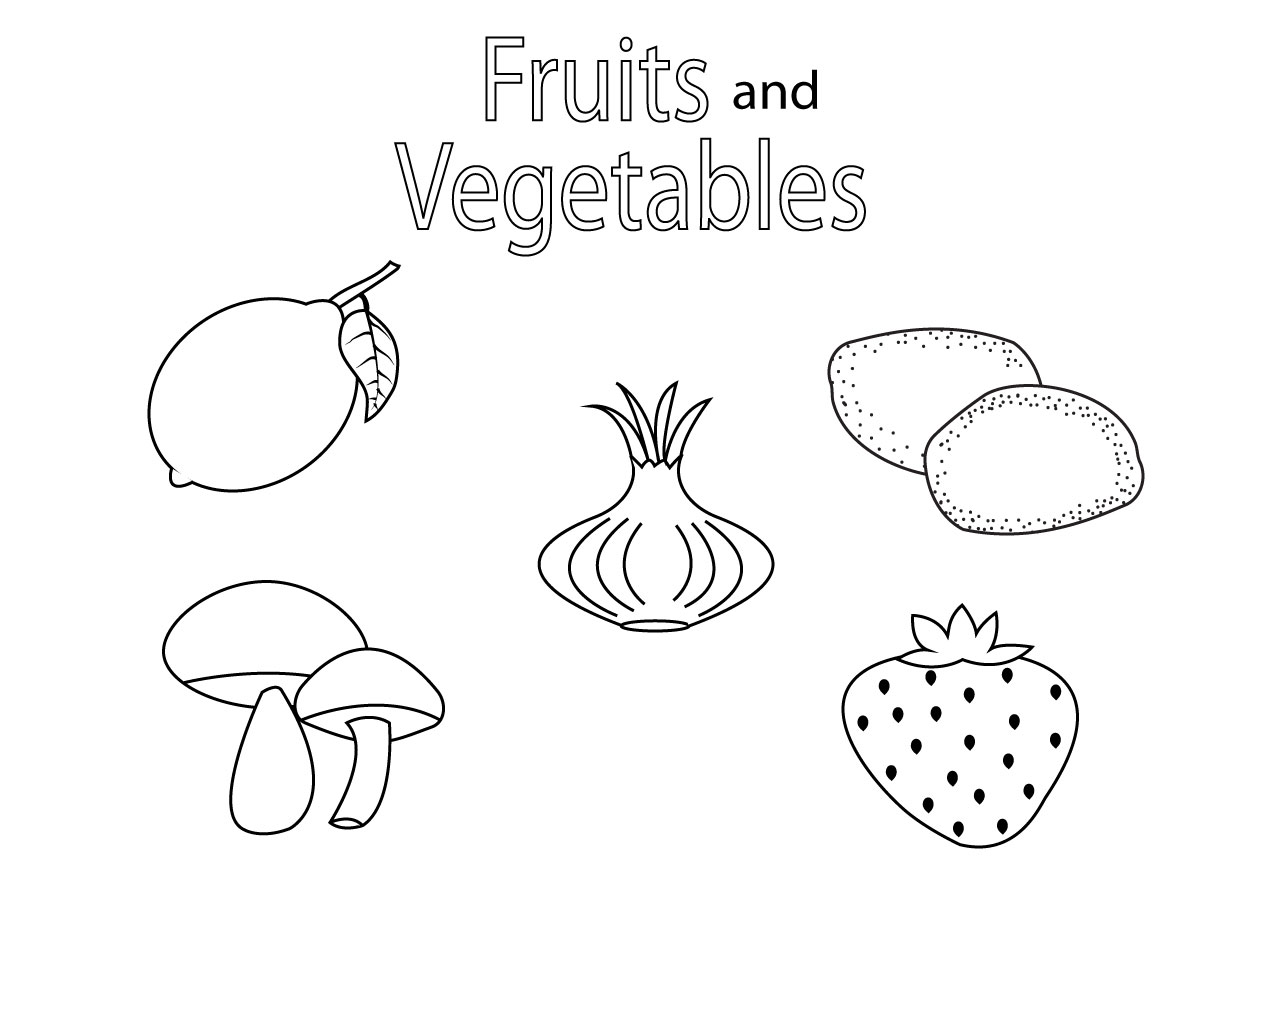 coloring printable fruits and vegetables fruits and vegetables coloring pages for kids printable vegetables fruits and coloring printable